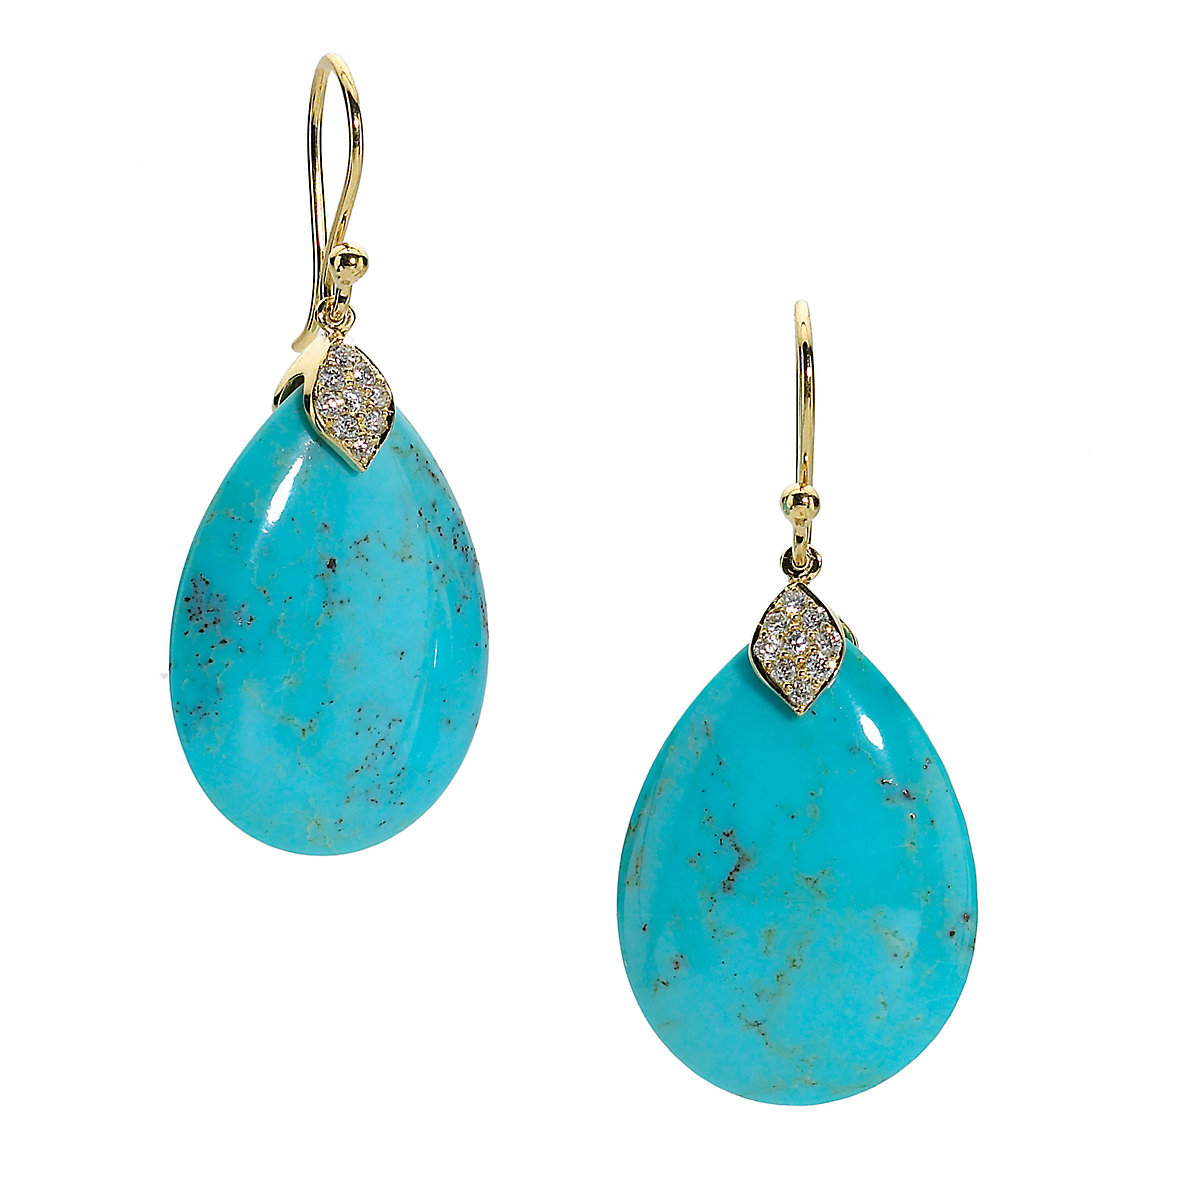 Elizabeth Showers Turquoise Teardrop & Pavé Diamond Earrings